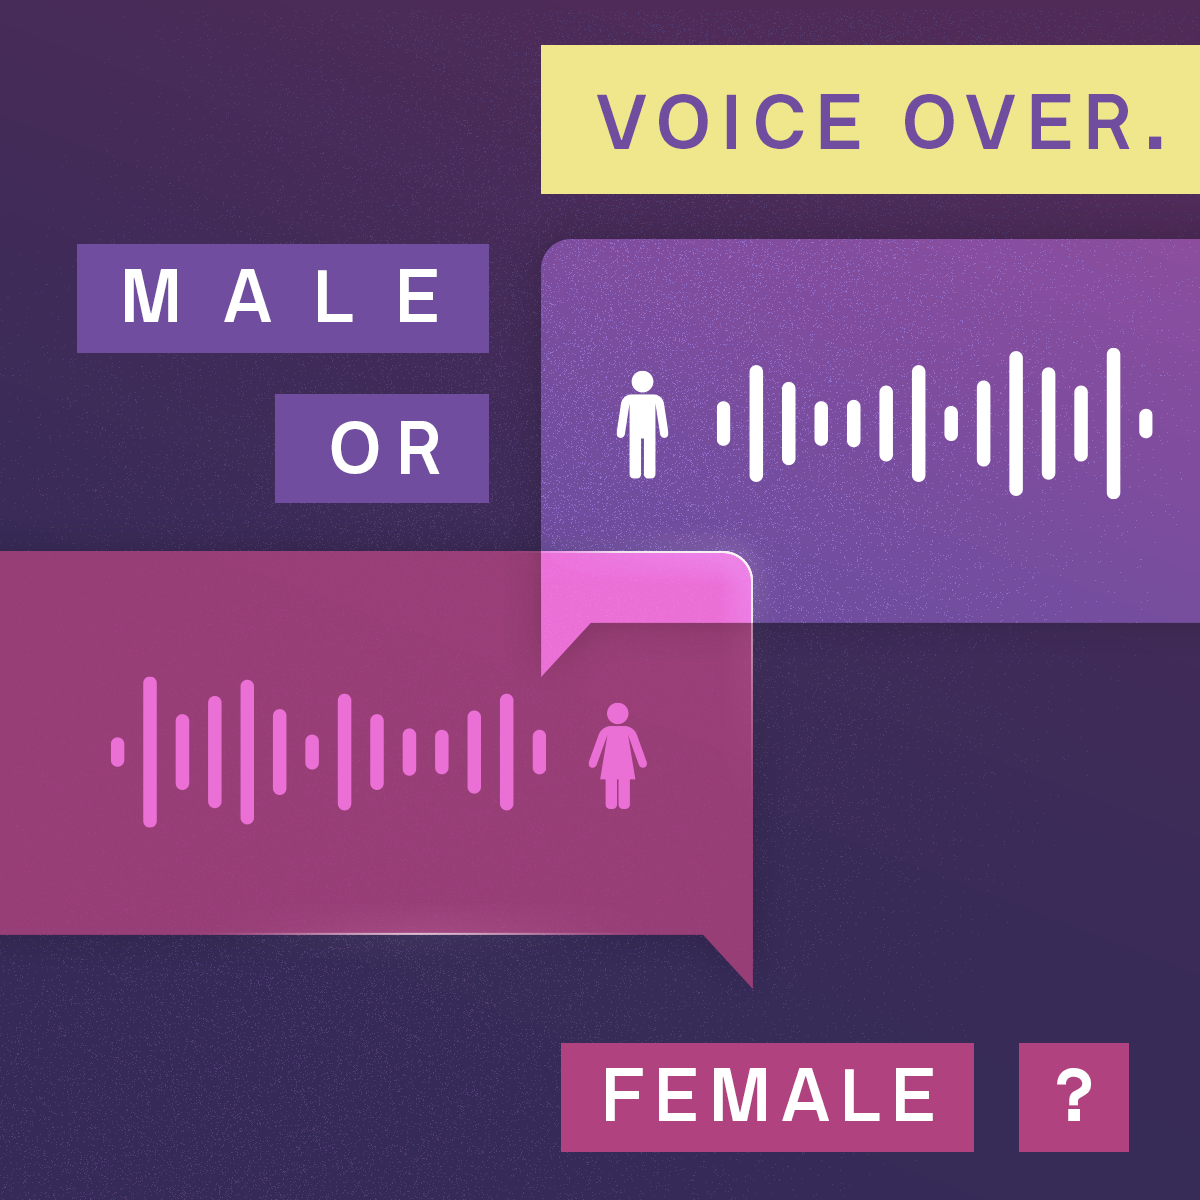 A diagram comparing the male and female voice